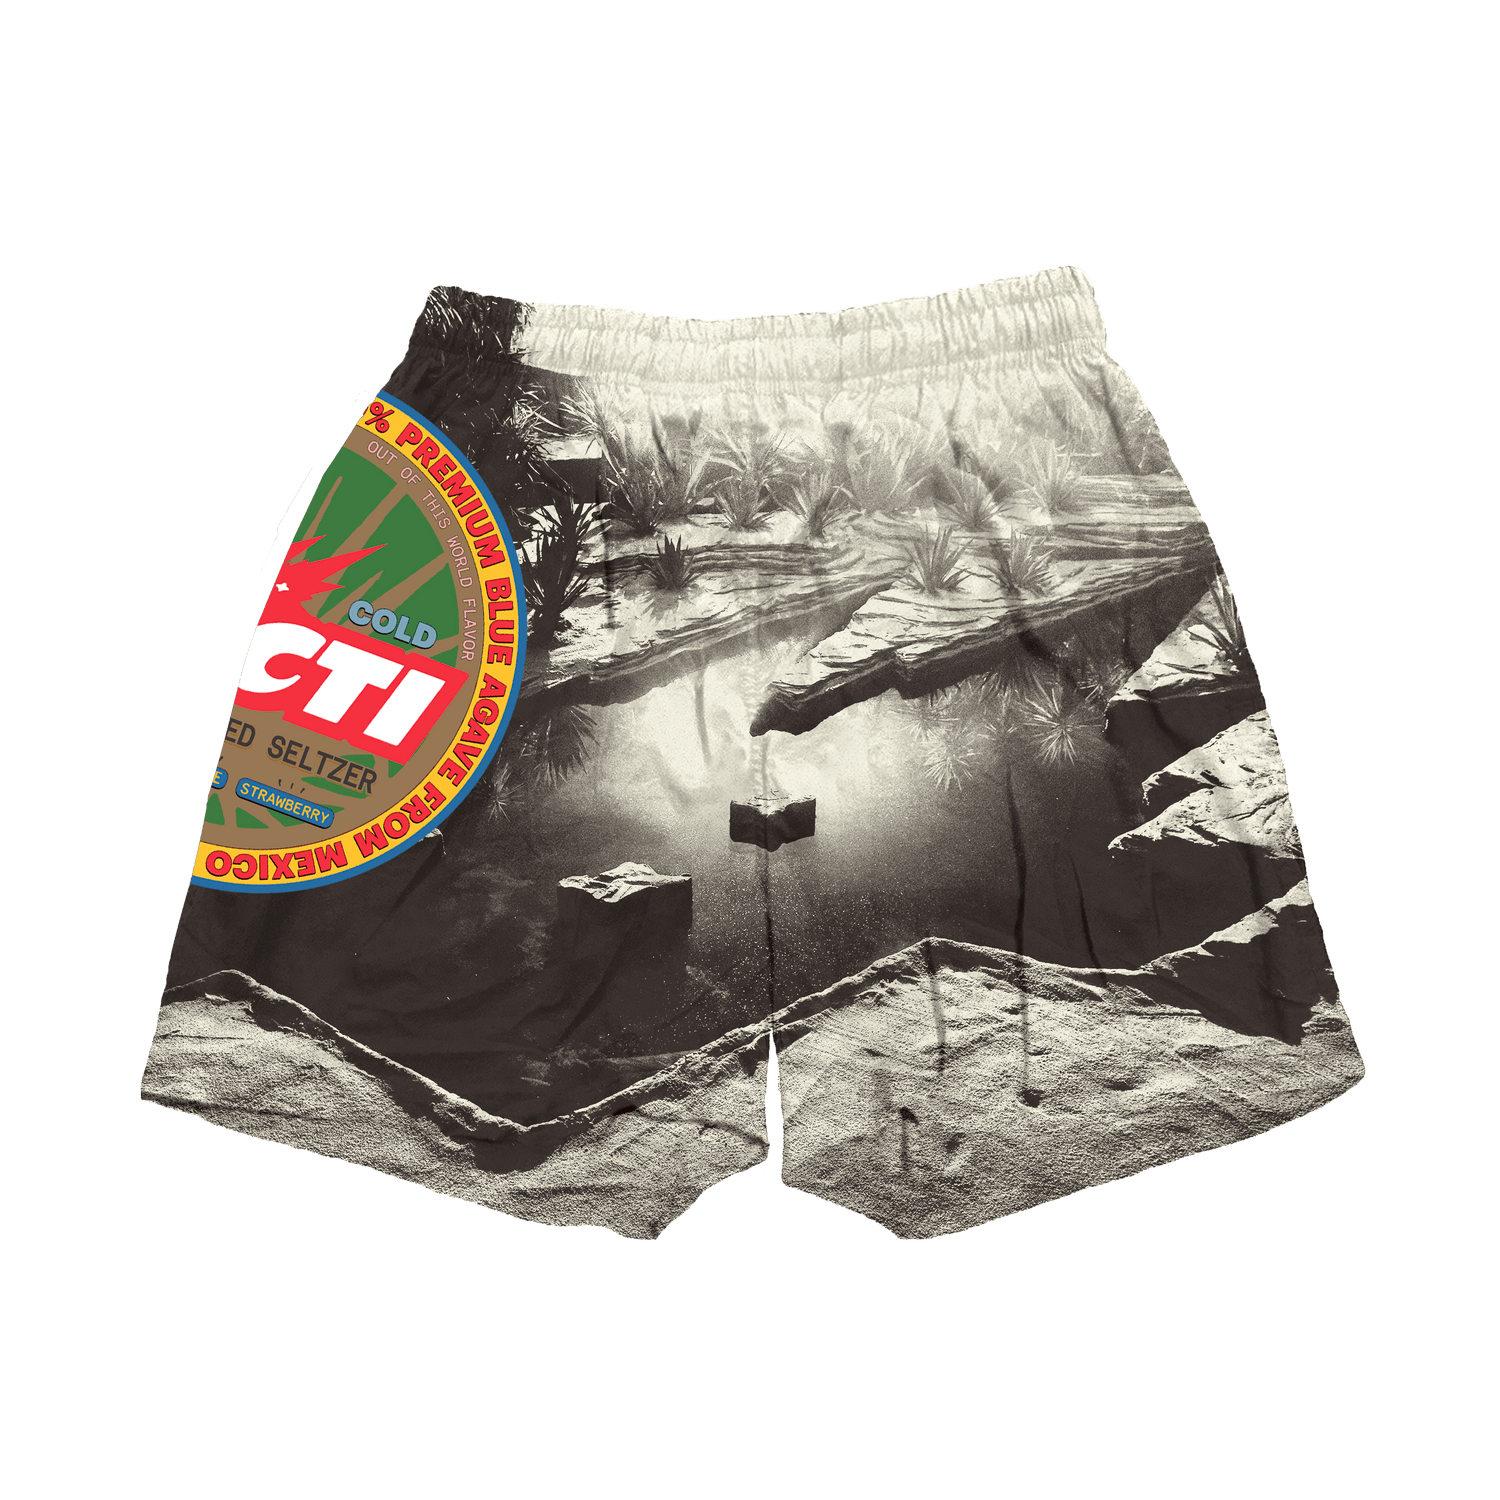 CACTI OASIS OUTDOOR SHORTS